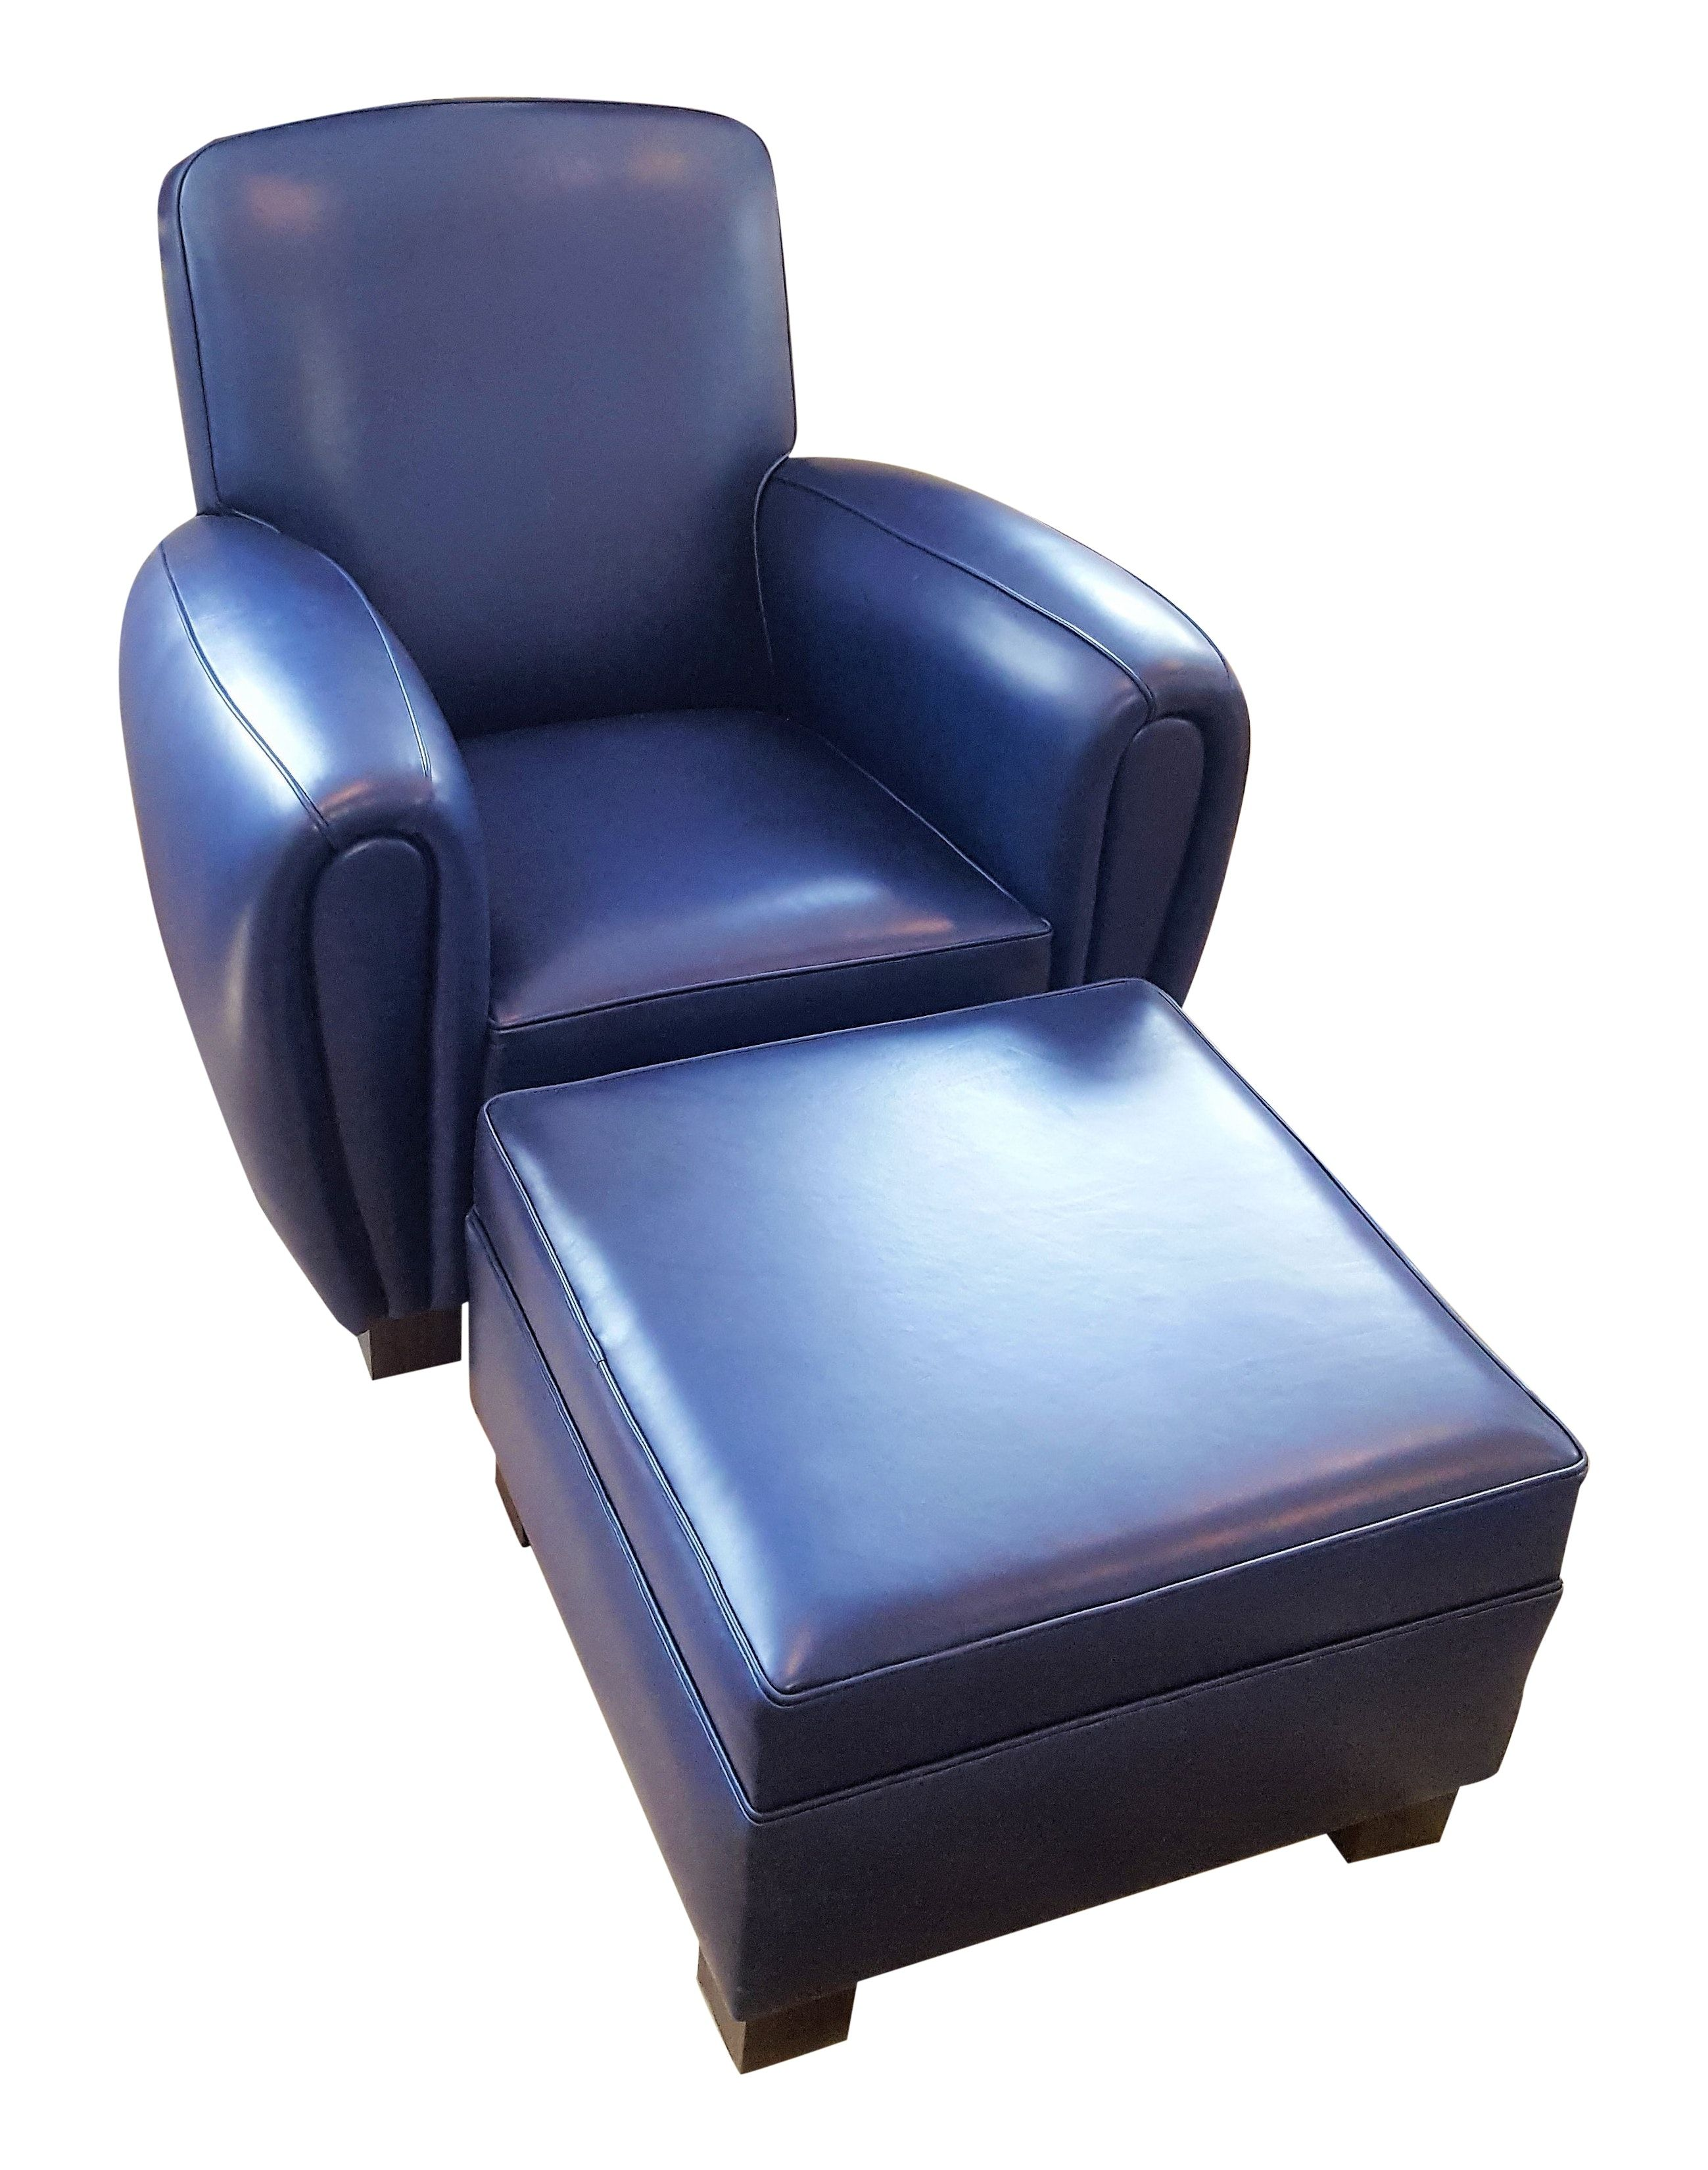 Navy Blue Leather Club Chair Ottoman Leather Chair Blue